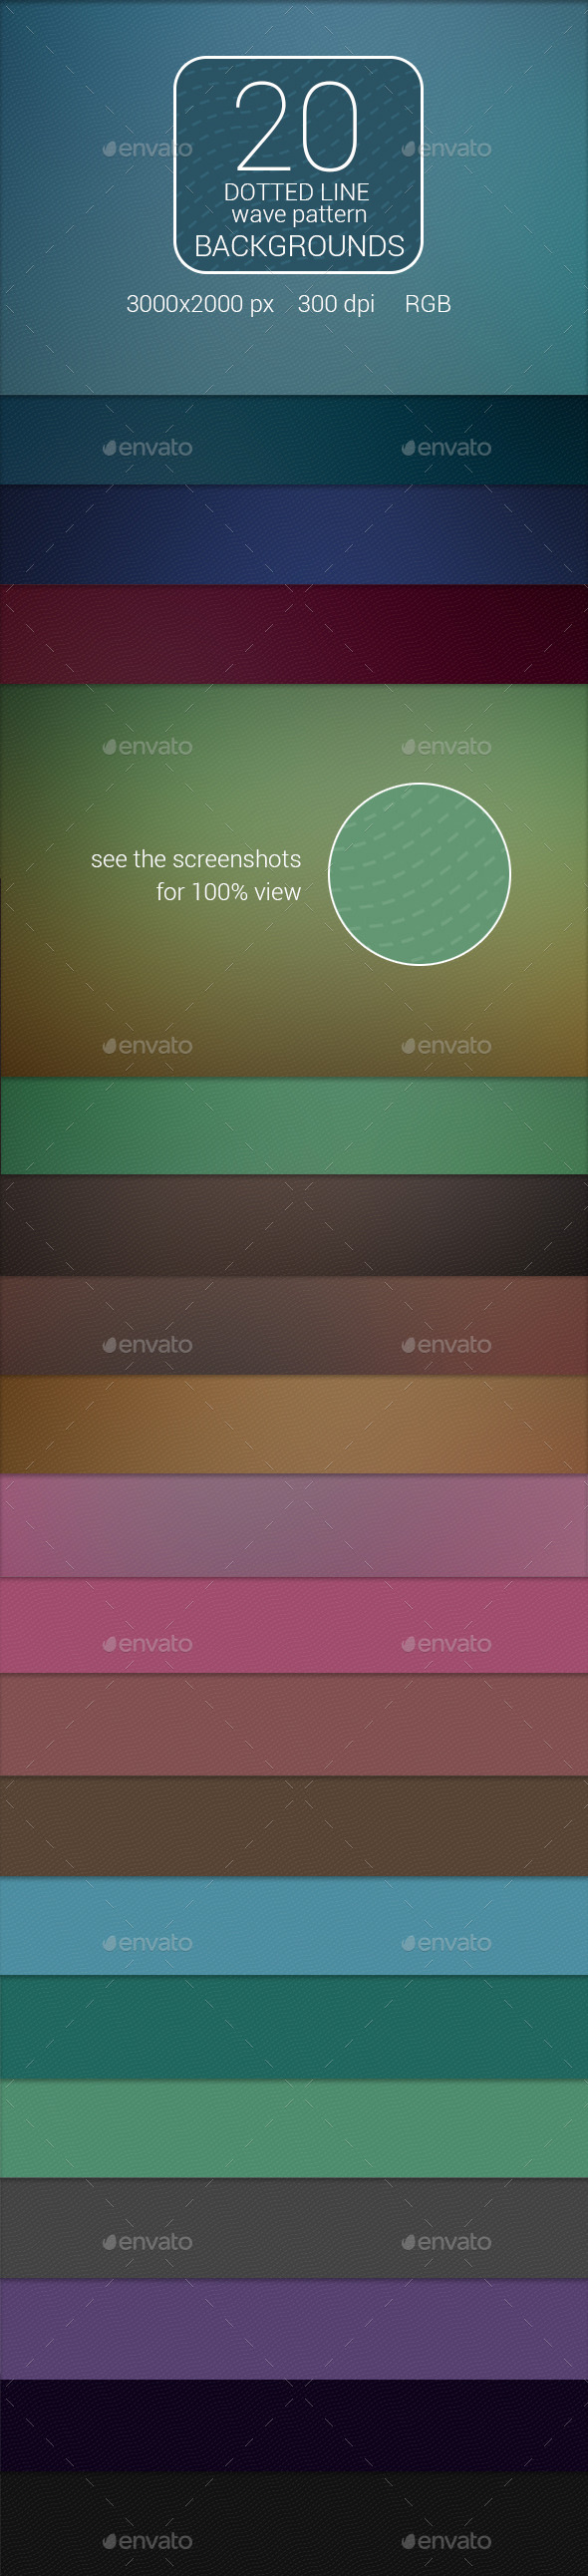 20 Dotted Line Wave Pattern Backgrounds - Backgrounds Graphics